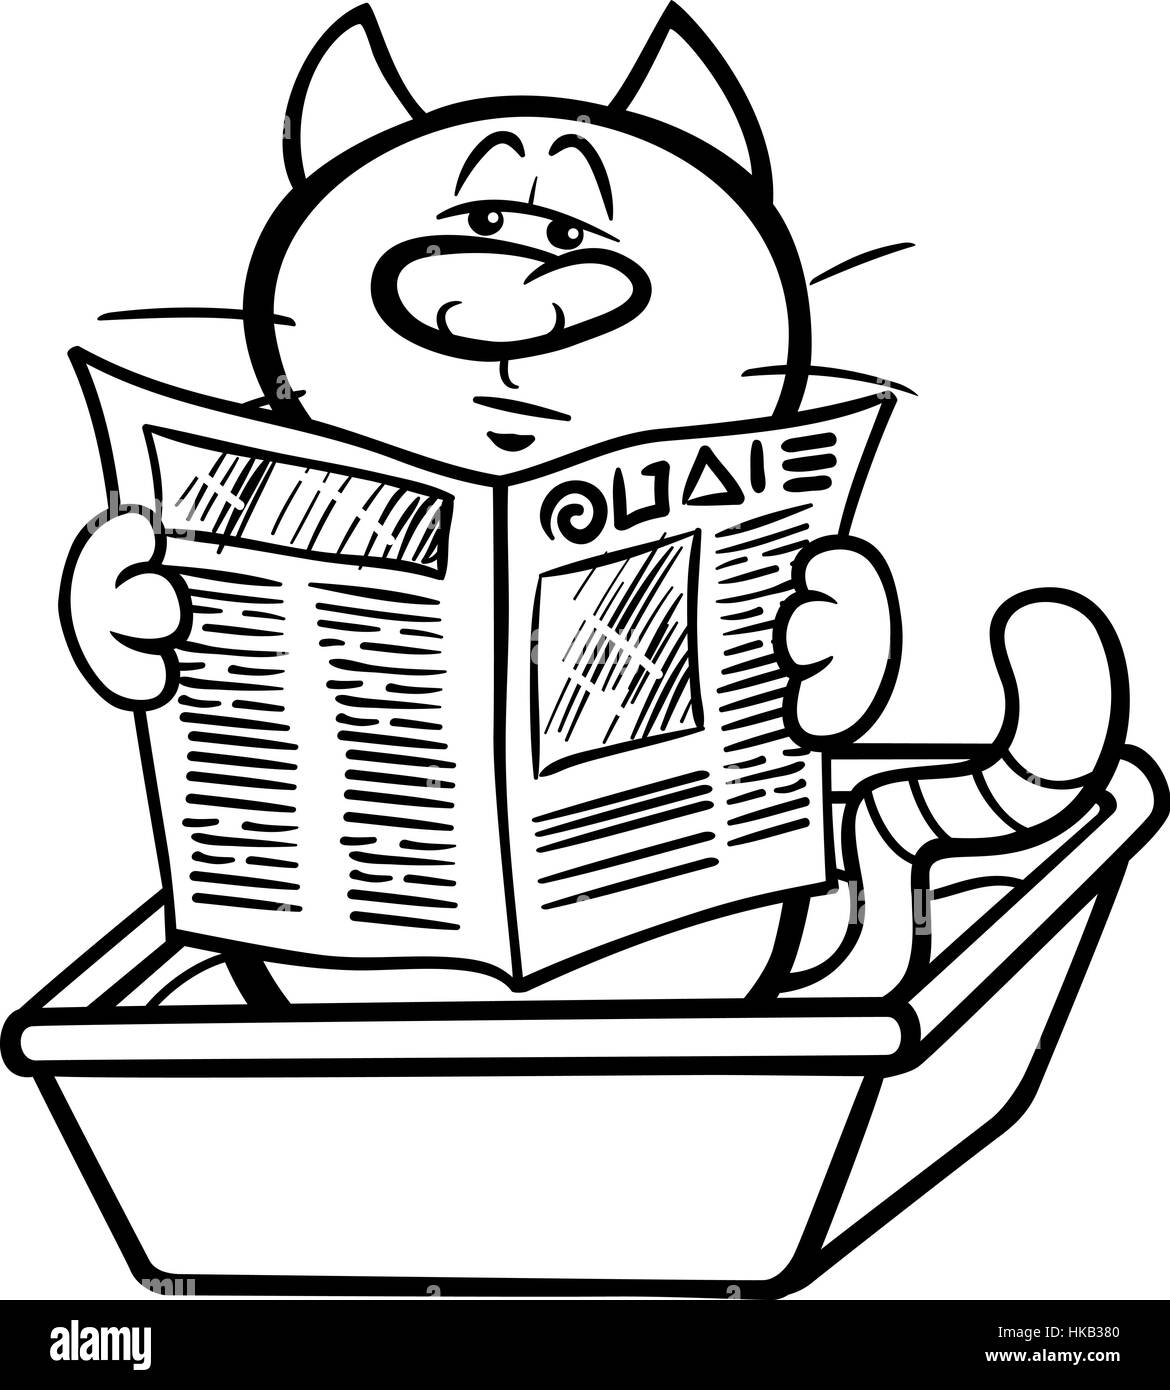 black and white cartoon illustration of cat reading a newspaper in